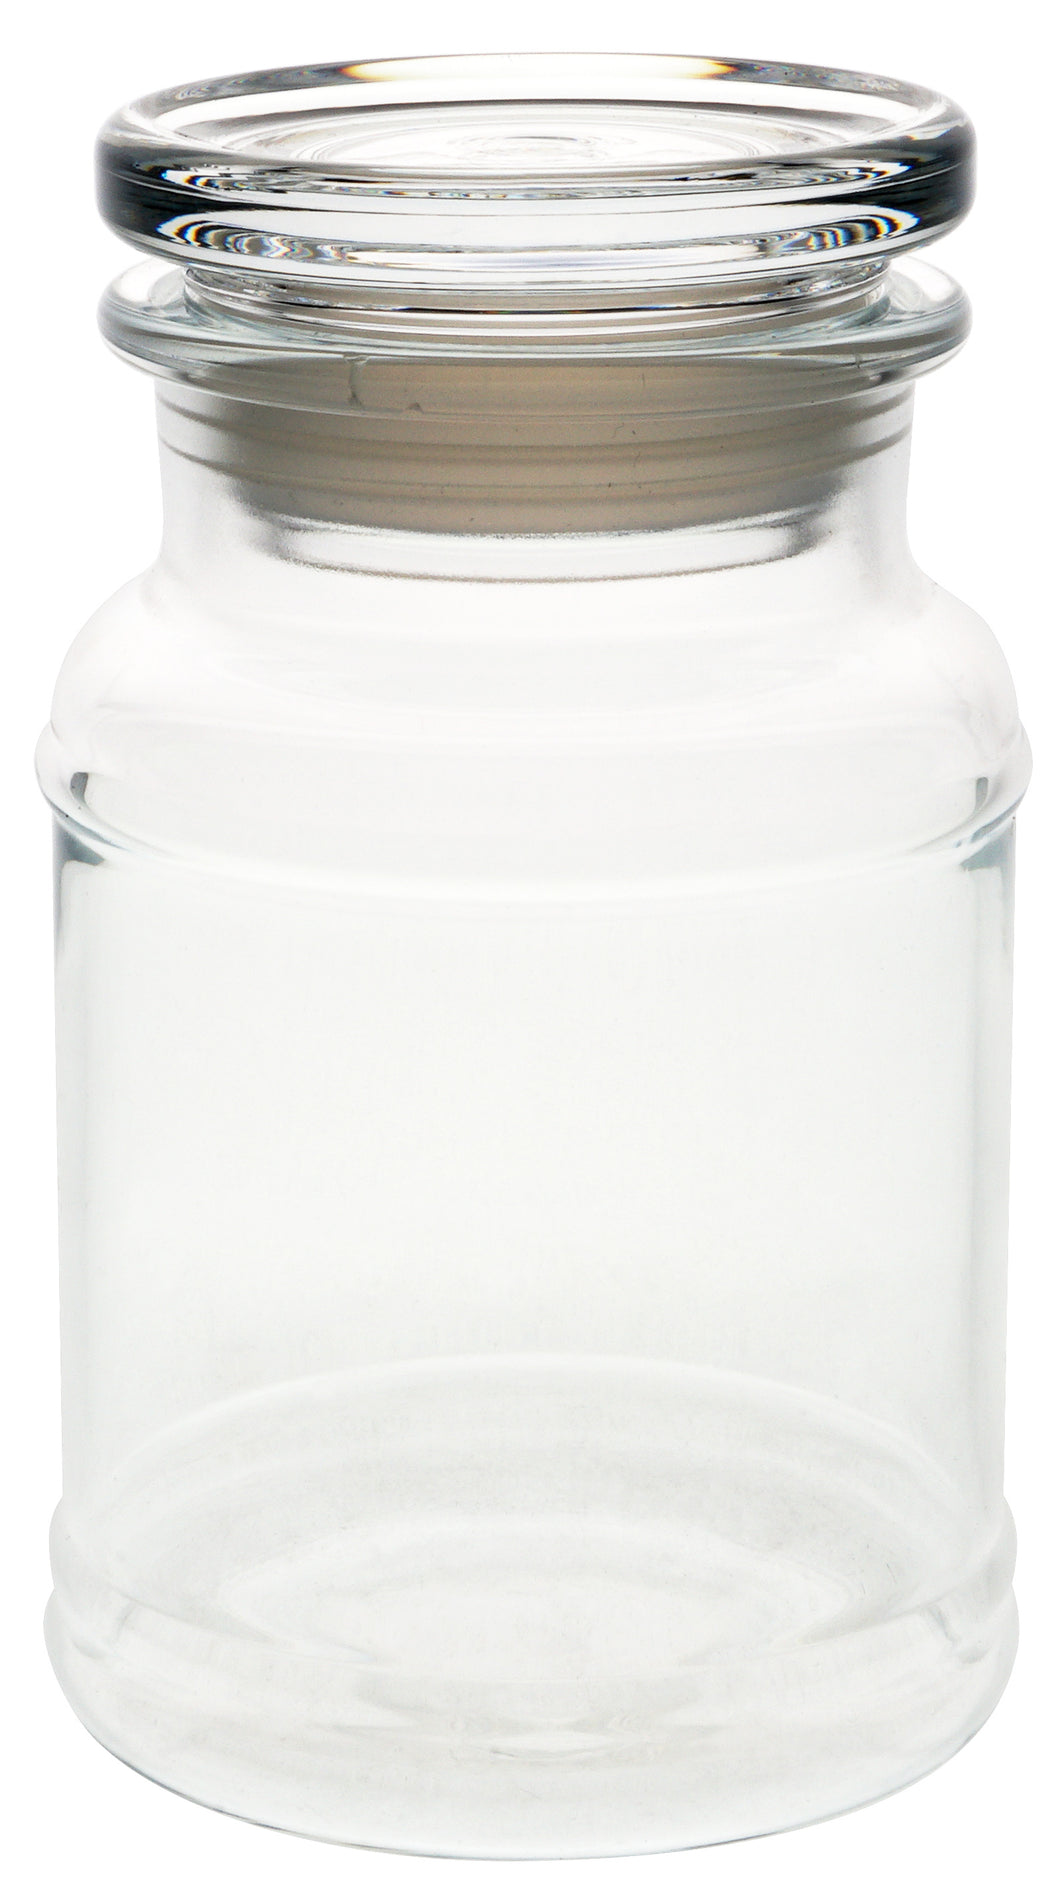 Unbreakable Storage jar 15